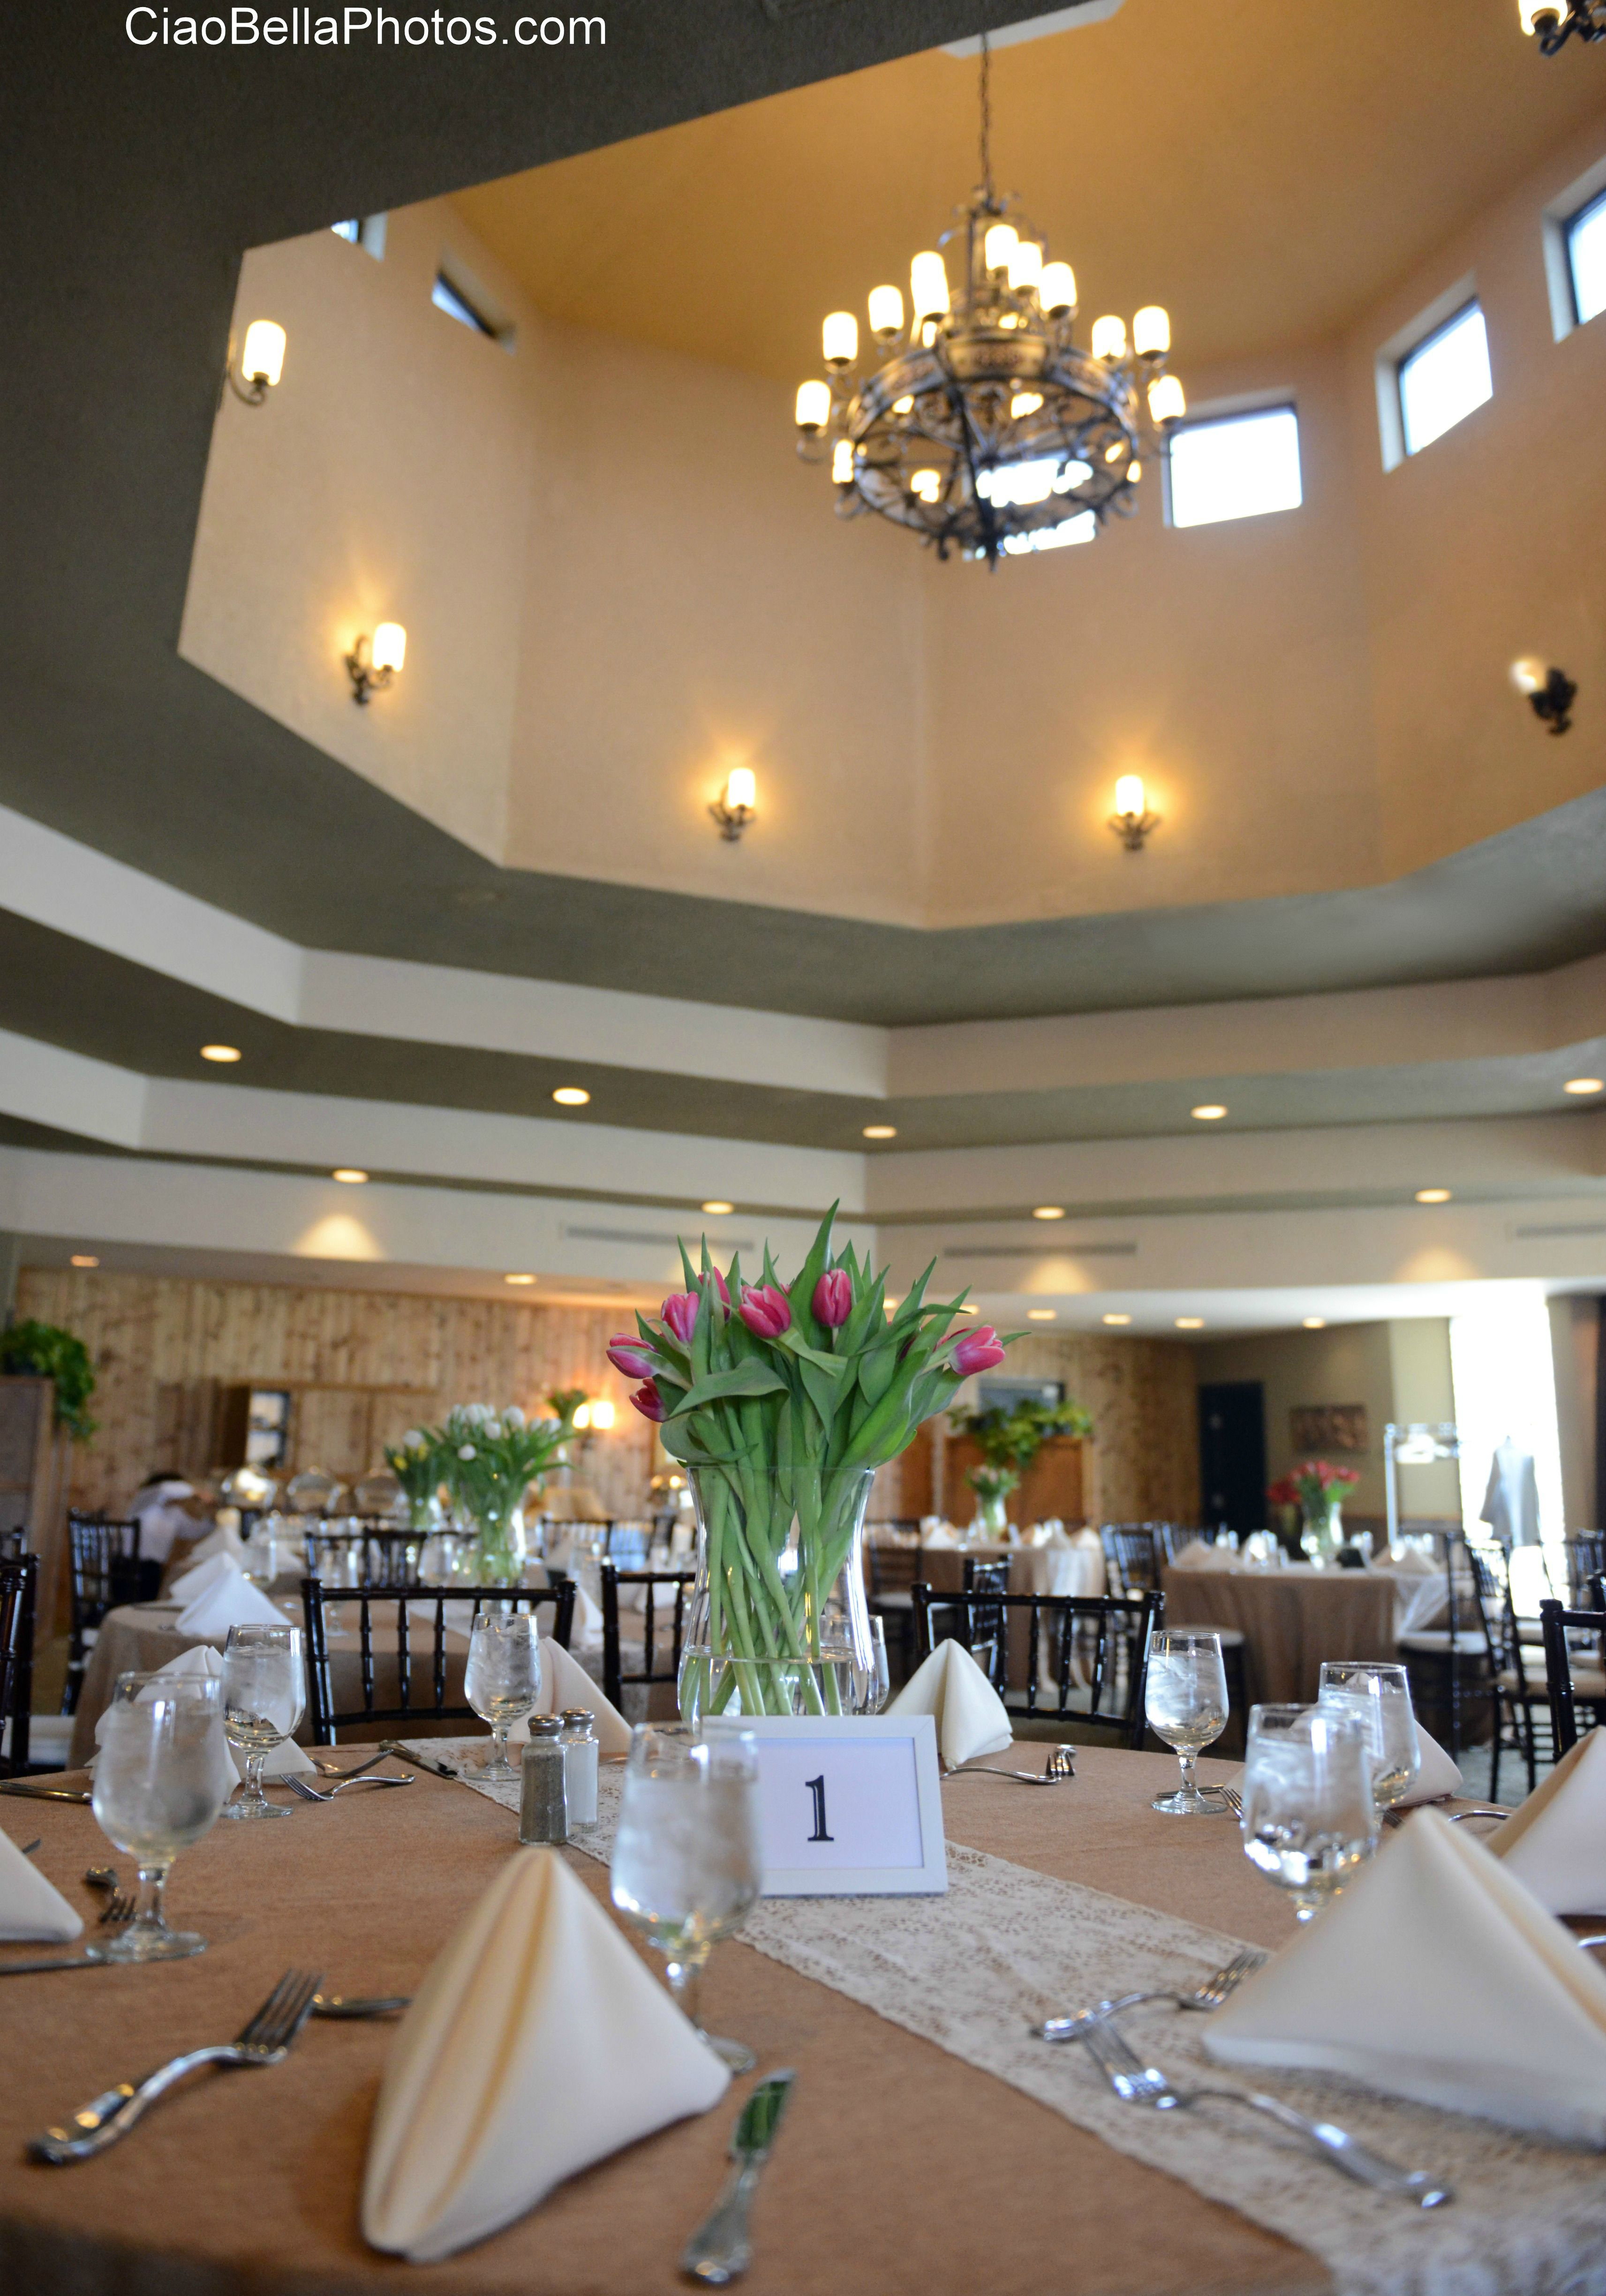 The banquet hall at Stoneridge Events Center, from the wedding ...